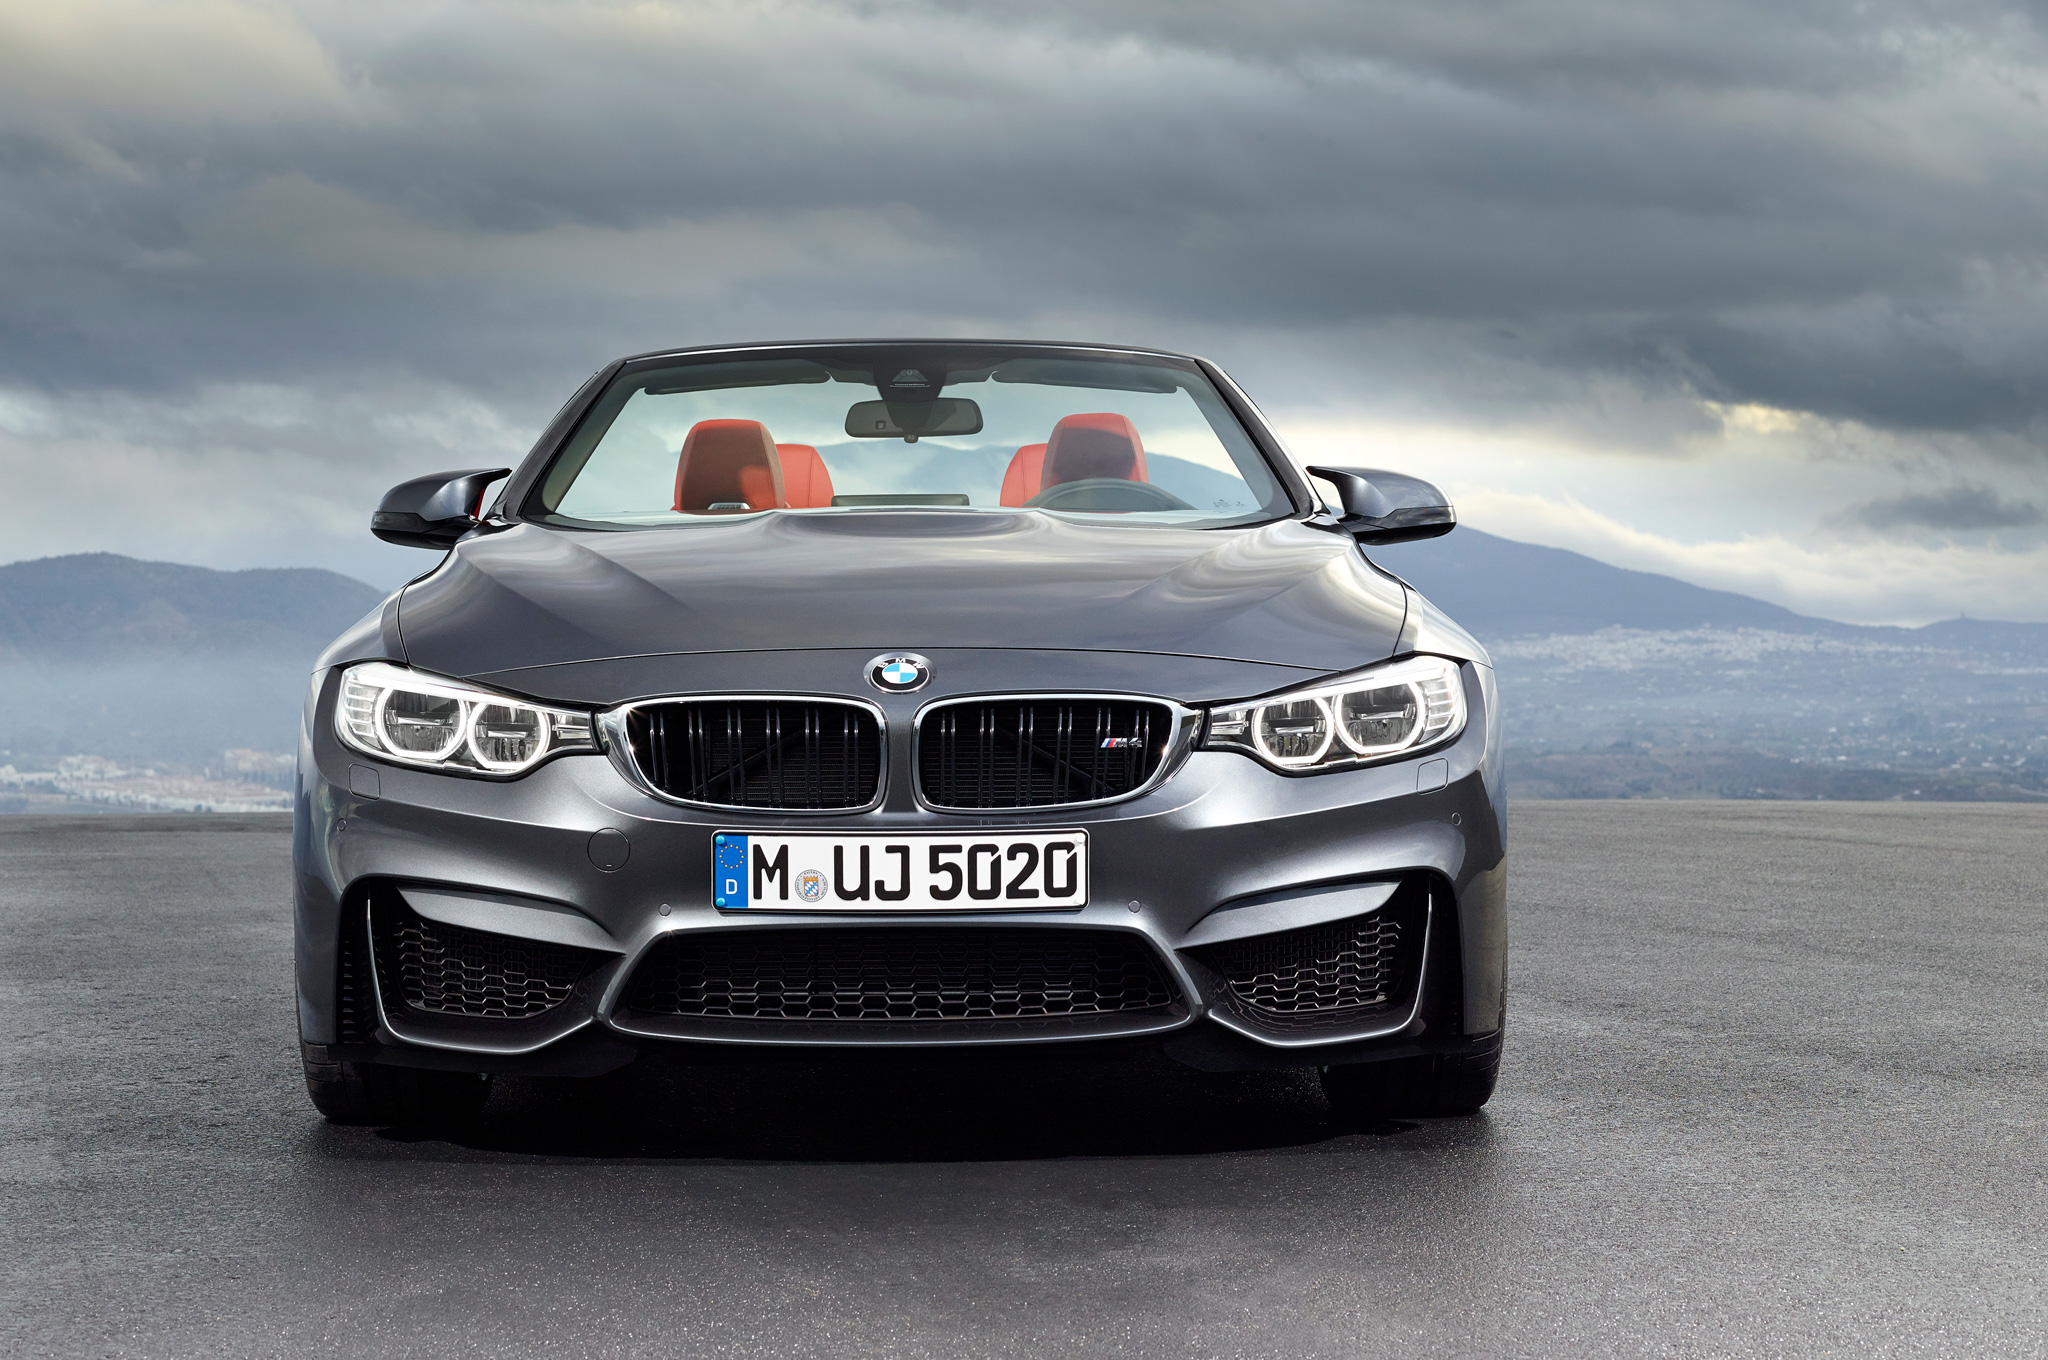 2015 Bmw M4 Convertible Concept Front End (View 7 of 50)